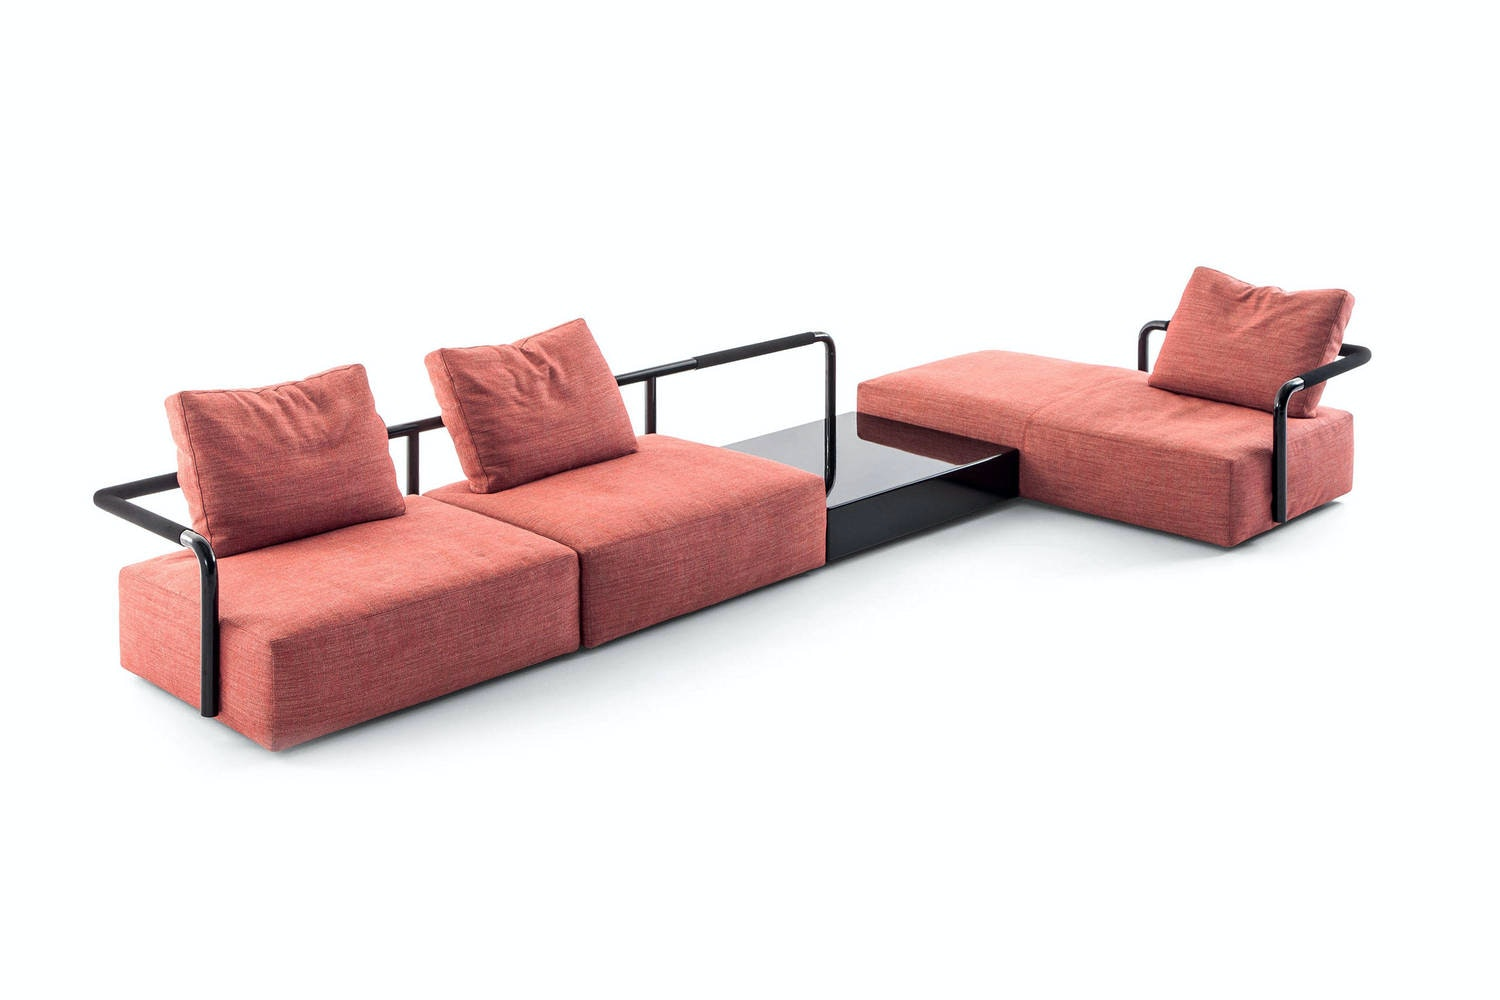 503 Soft Props Sofa by Konstantin Grcic for Cassina